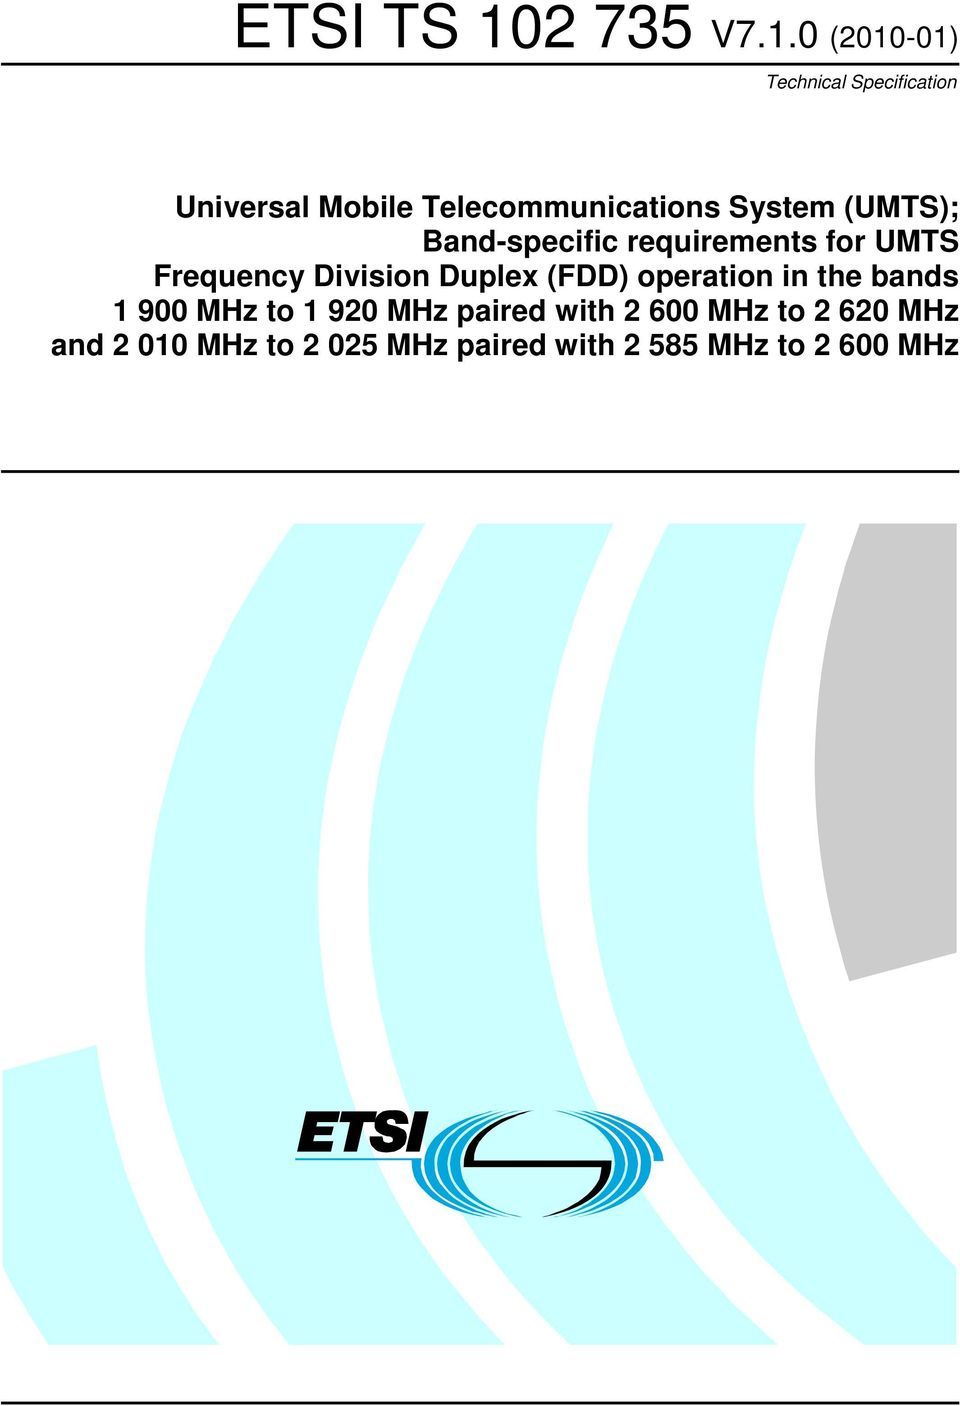 Frequency Division Duplex (FDD) operation in the bands 1 900 to 1 920